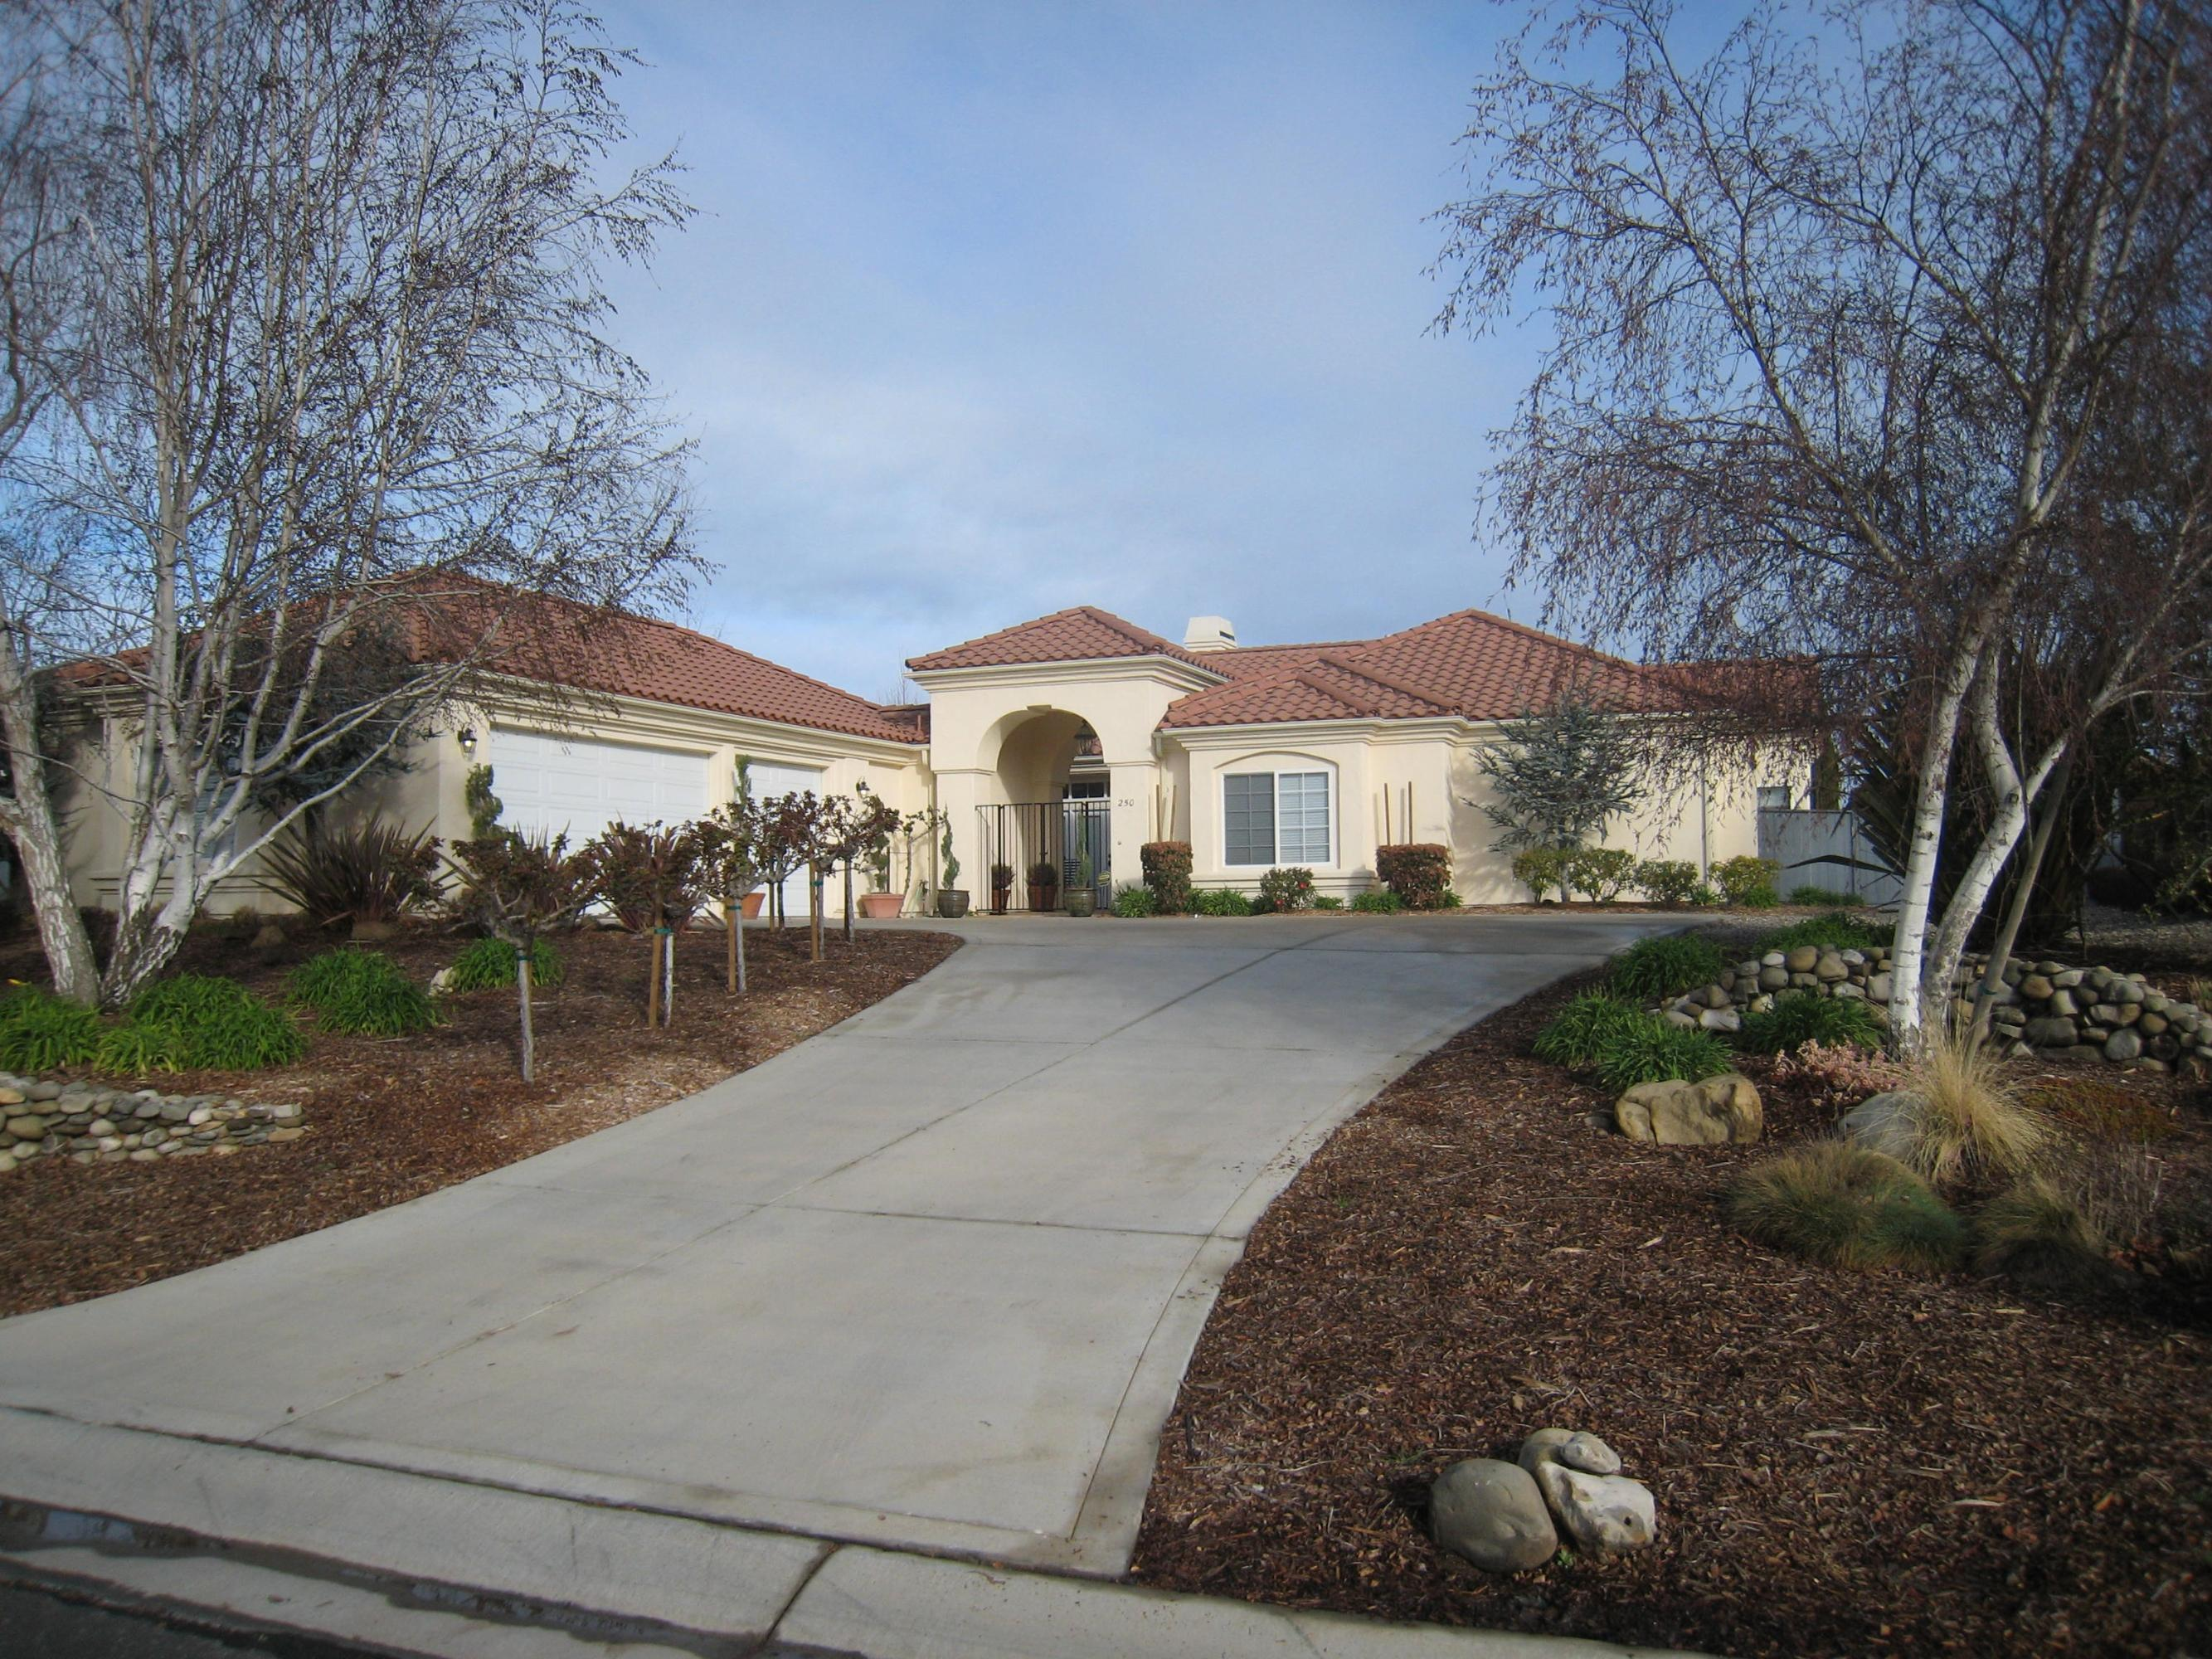 Property photo for 250 Valhalla Dr Solvang, California 93463 - 14-454